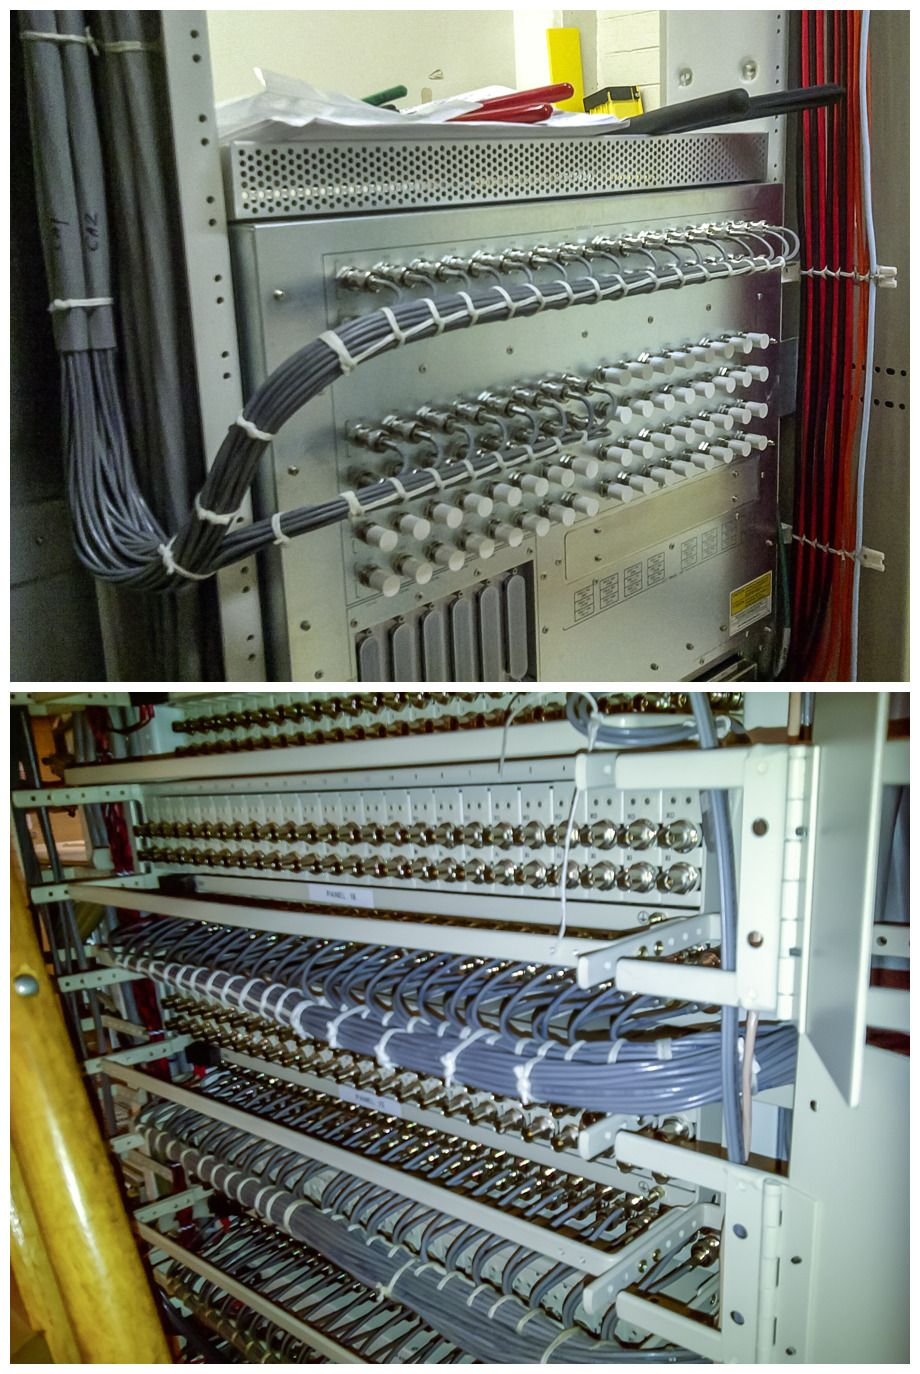 Cable Lacing Running Stitch Network organization